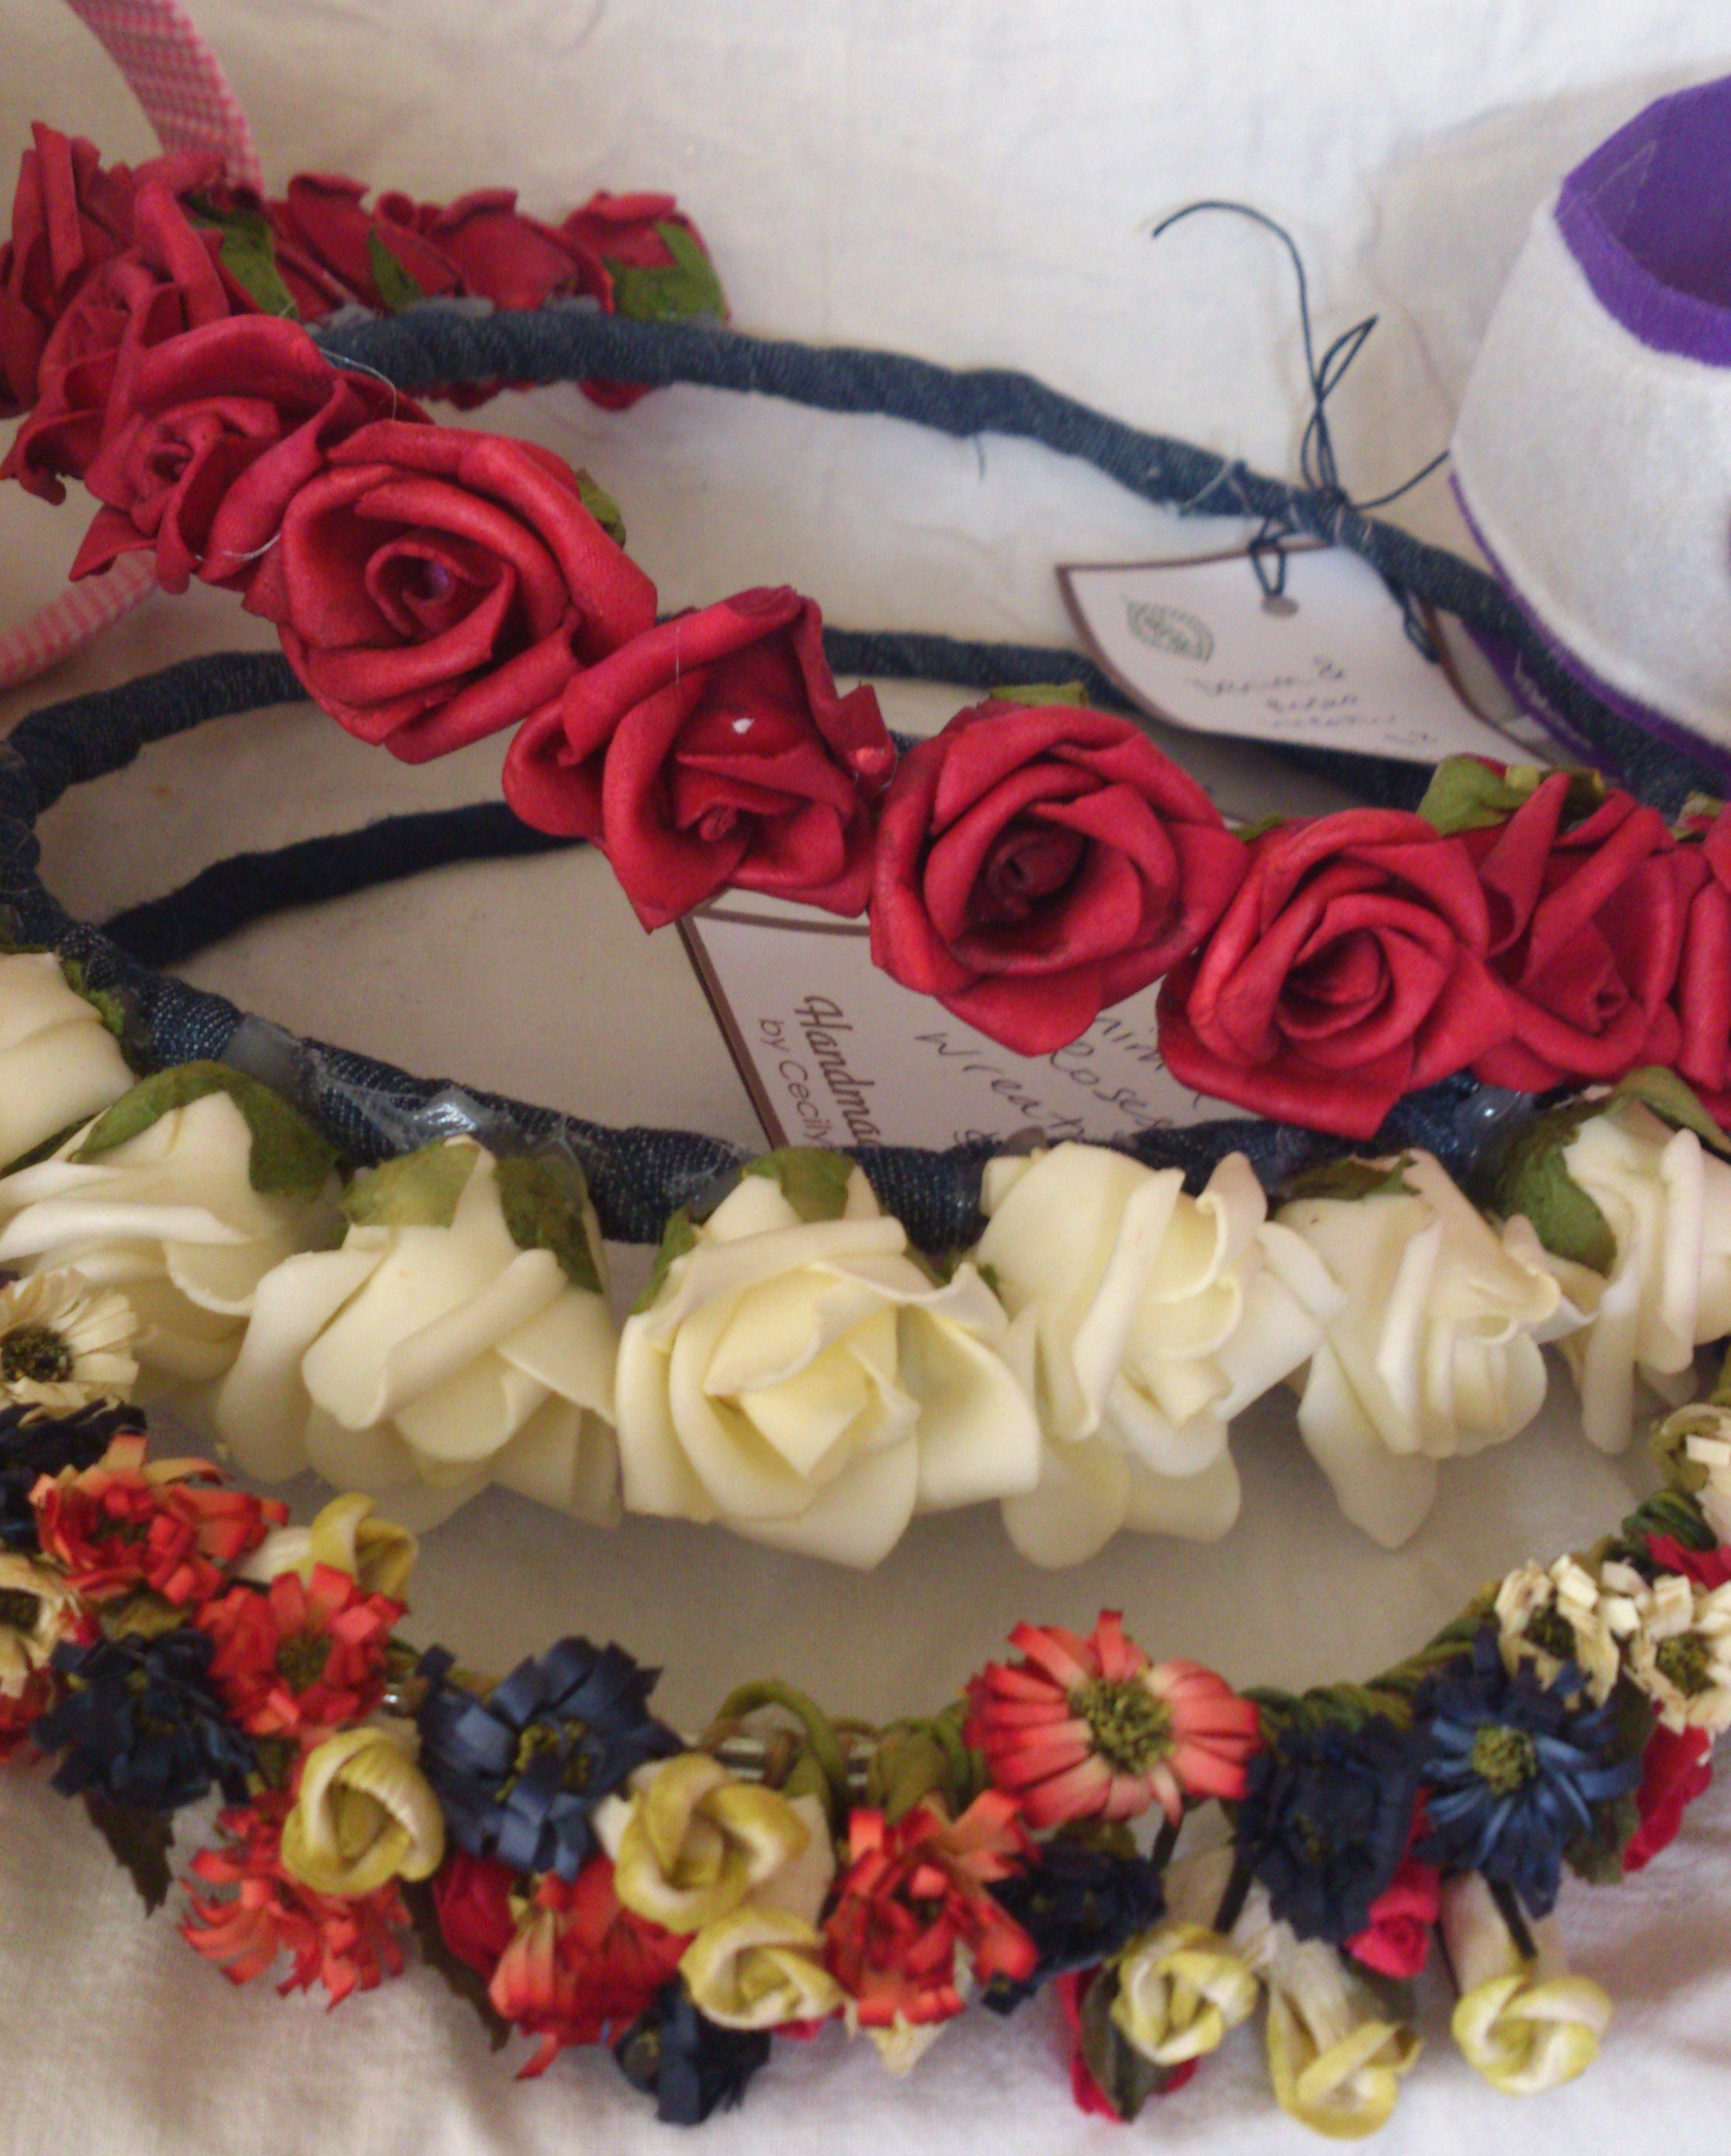 These flower wreaths were made with three rounds of heavy duty wire, wrapped around with denim strips. The roses were hot glued to the denim and the smaller flowers were wound around the binding and then hot glue finished.